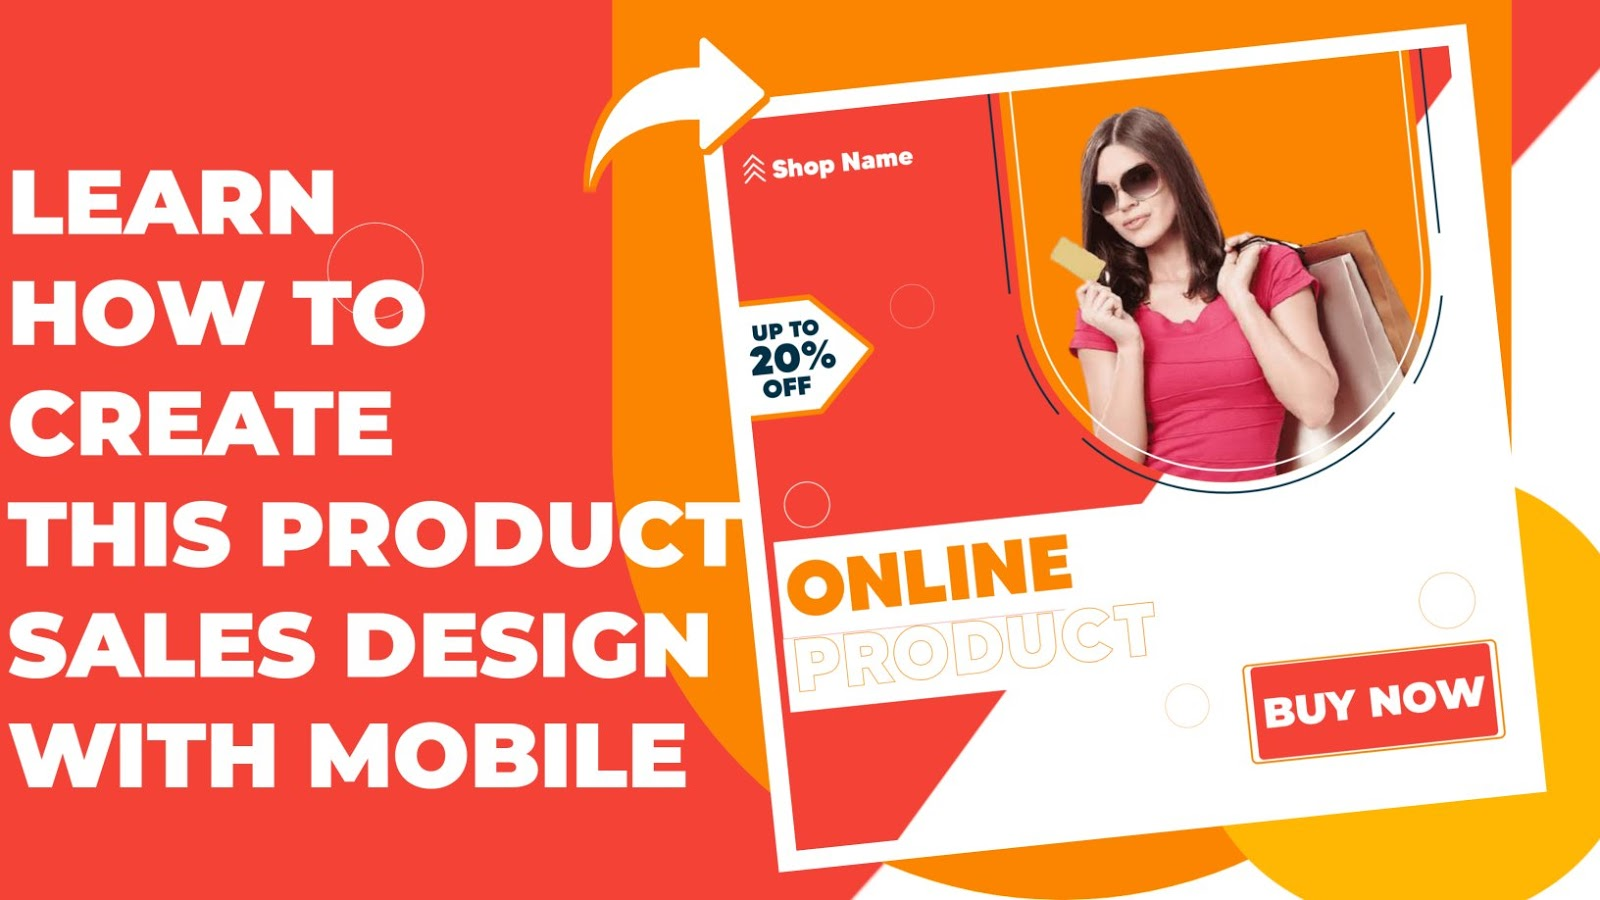 How To Create Graphic Design For Product Poster With Mobile